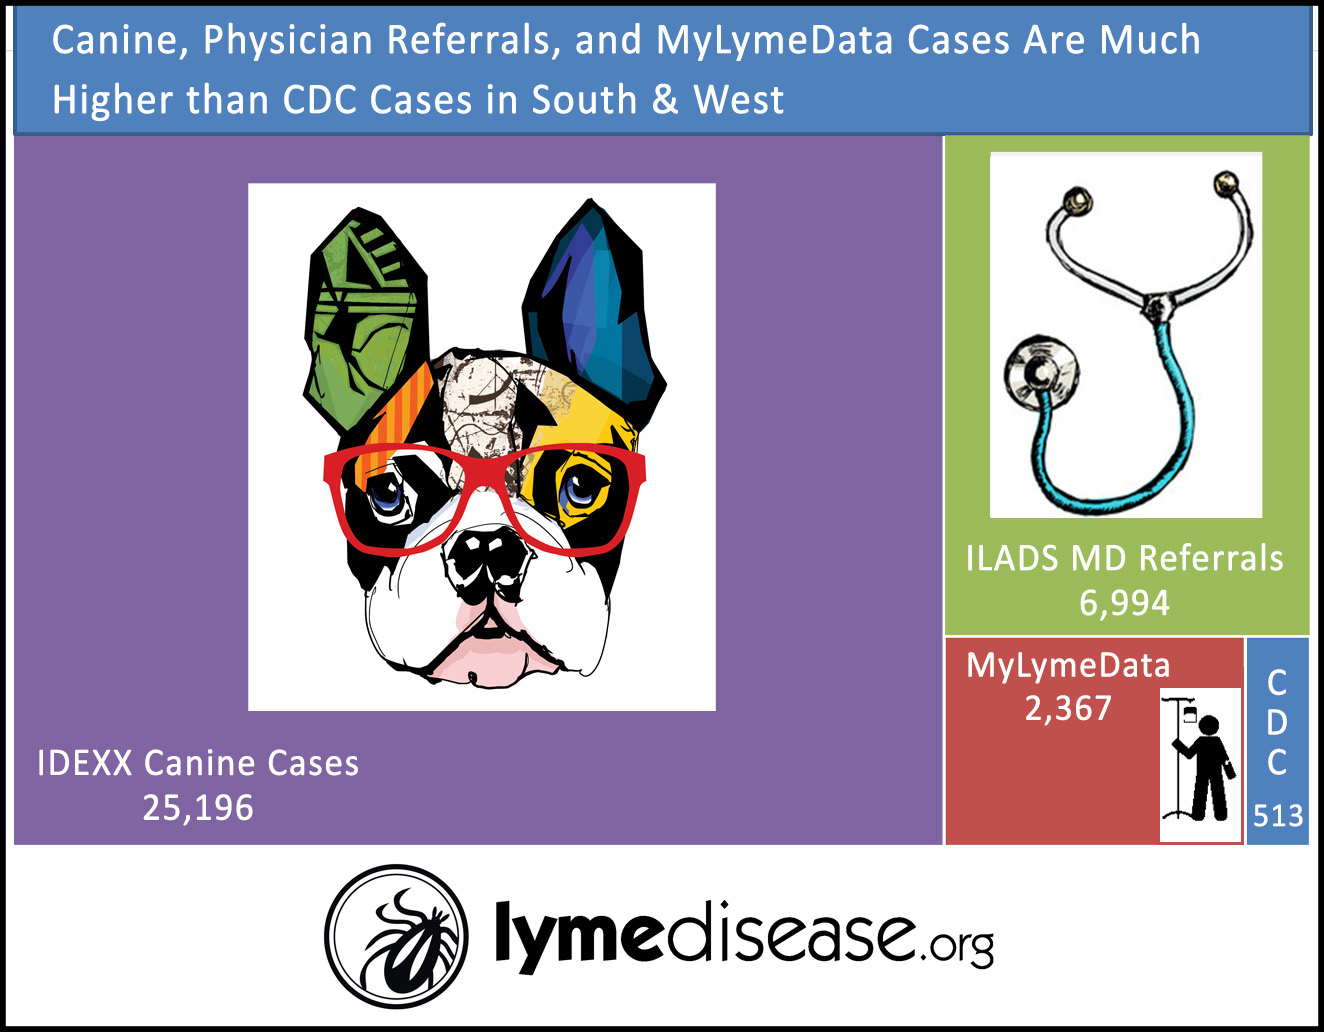 Lymedisease Org The Table Below Shows How Various Data Sources Compare To The 24 States Where Mylymedata Reports More Cases Than The Cdc Reports